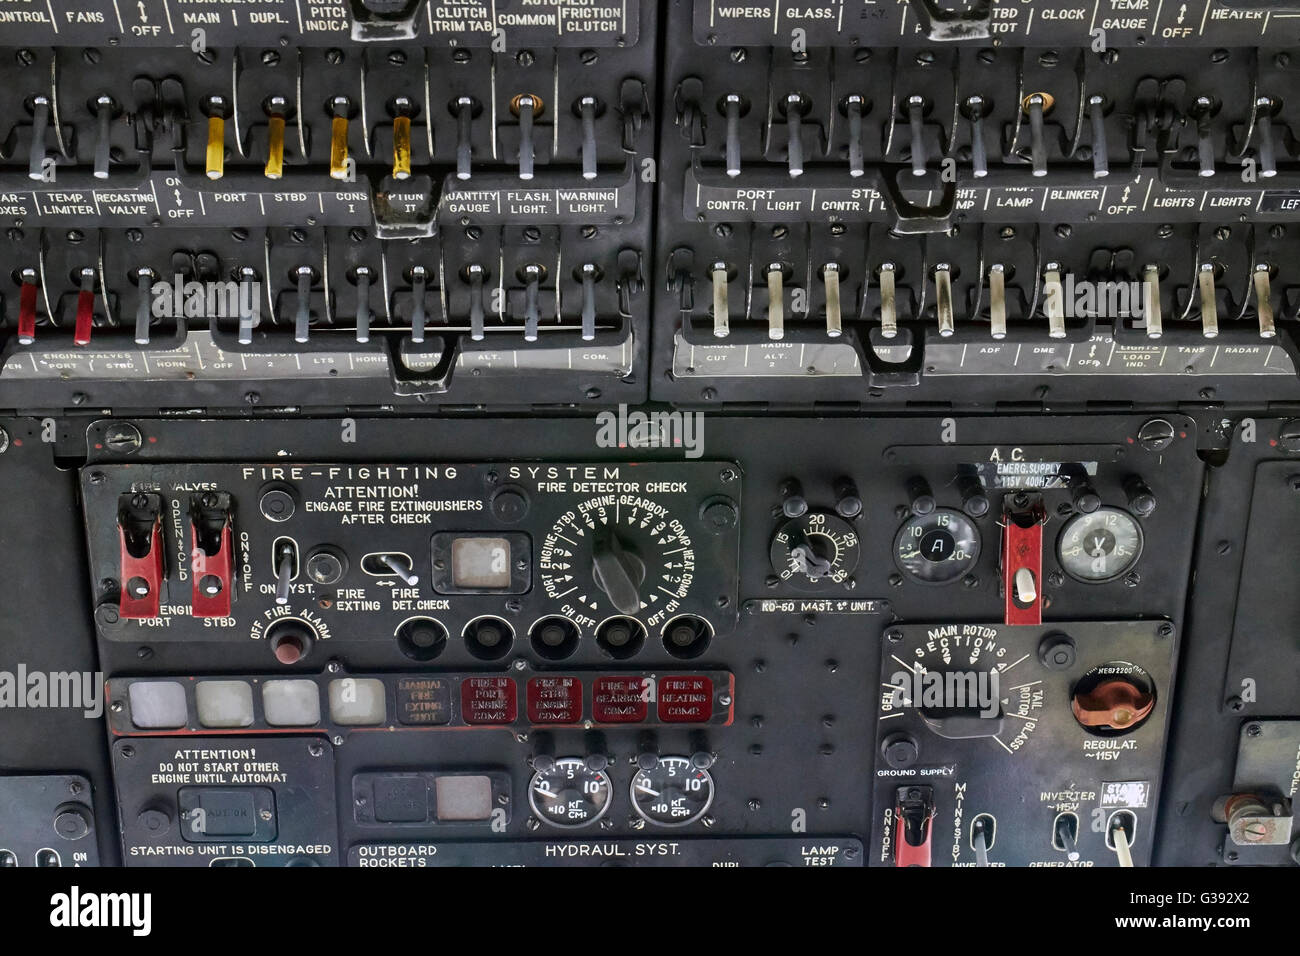 Mil Mi-8T helicopter cockpit control panel, Finland - Stock Image